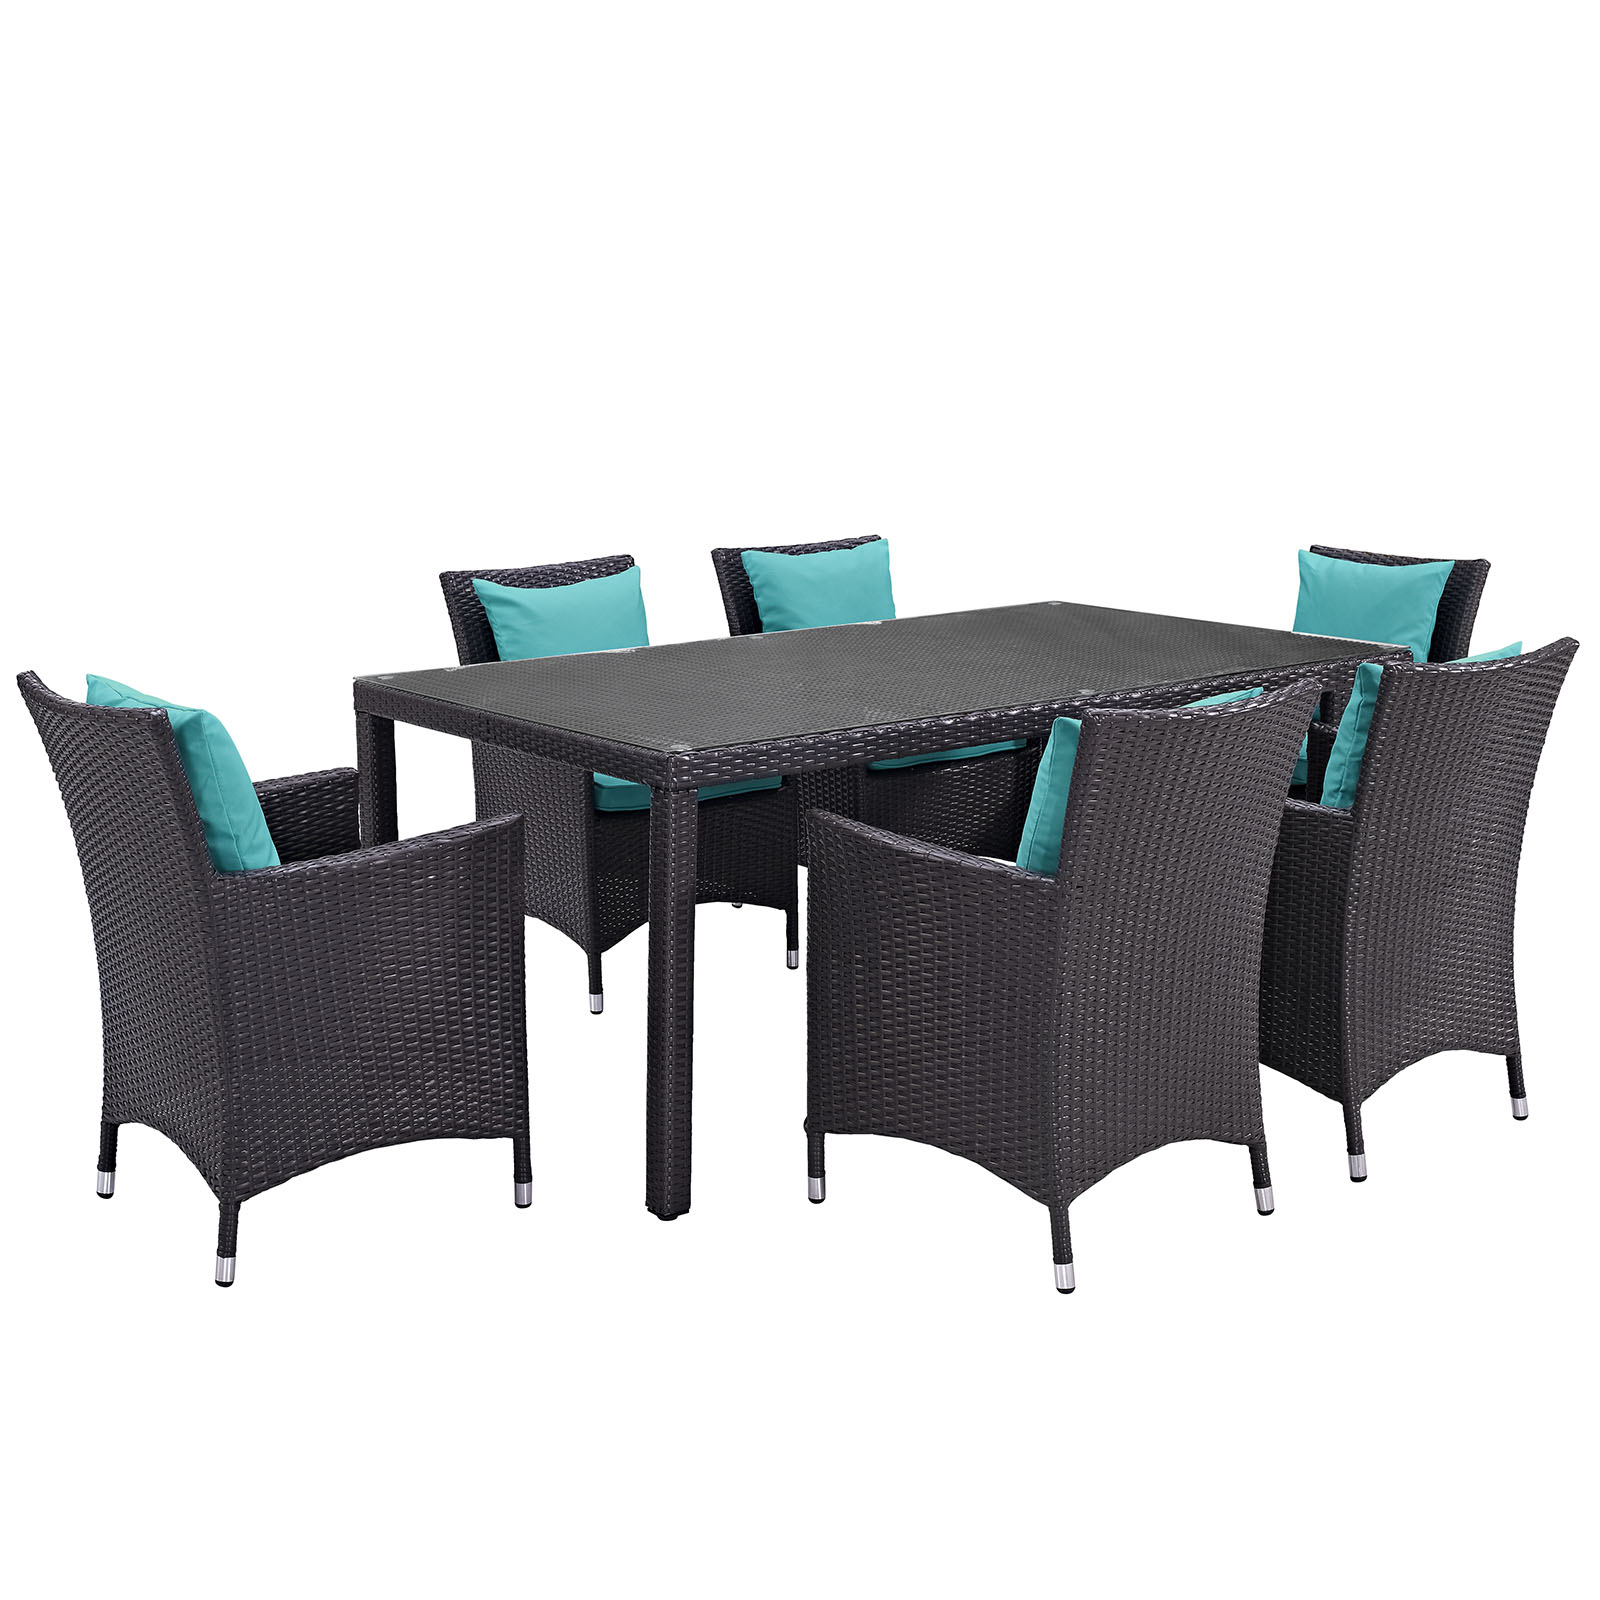 Modern Contemporary Urban Design Outdoor Patio Balcony Seven PCS Dining Chairs and Table Set, Blue, Rattan